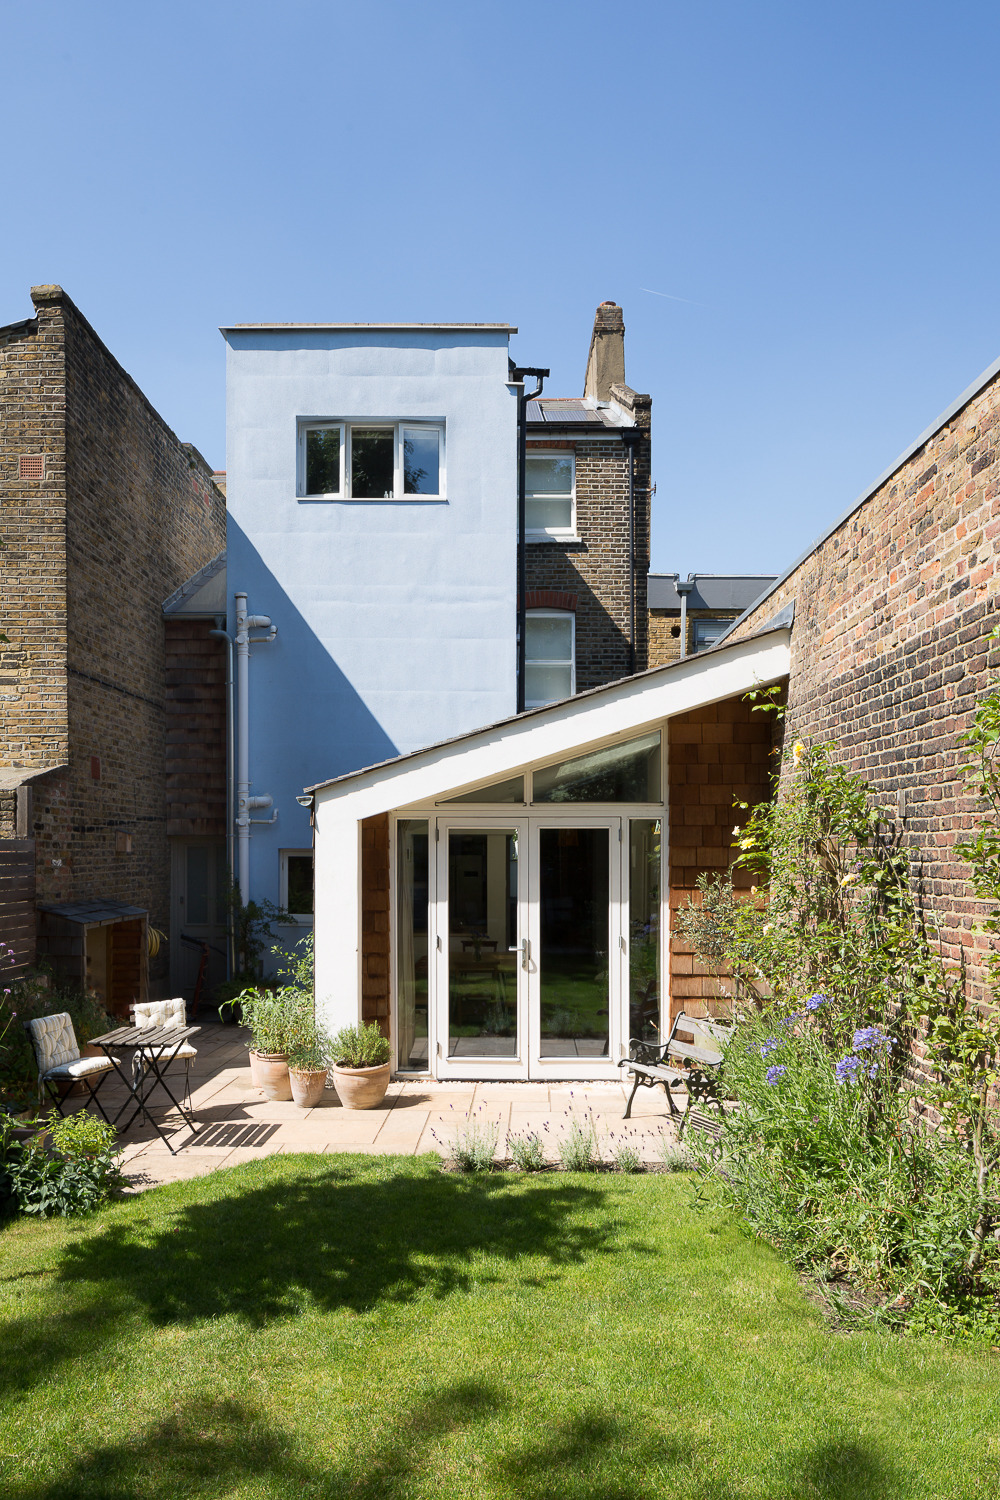 The ground floor rear extension is a new element added by Chris. The blue part of the house was, in the upper storey, an extension added onto the rear outrigger of the house in the 1990s resulting in a mish-mash of finishes. Chris insulated this portion with external wall insulation - there was no nice Victorian brickwork to preserve, and insulating externally doesn't impinge on the internal floor area.